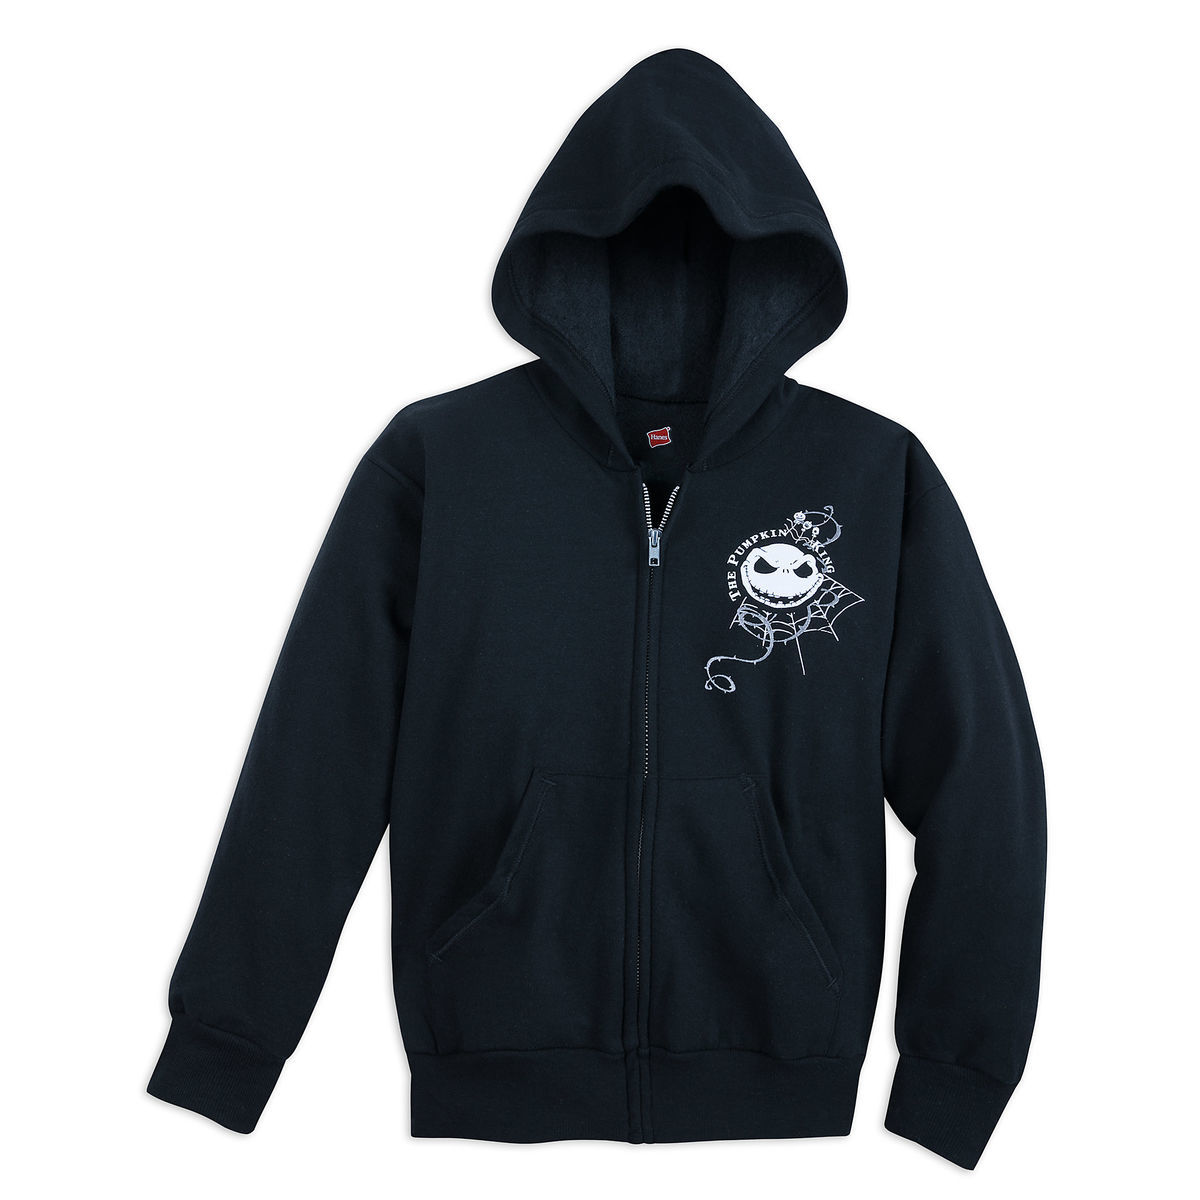 Disney Child Zip Hoodie - Jack Skellington - Pumpkin King - Black